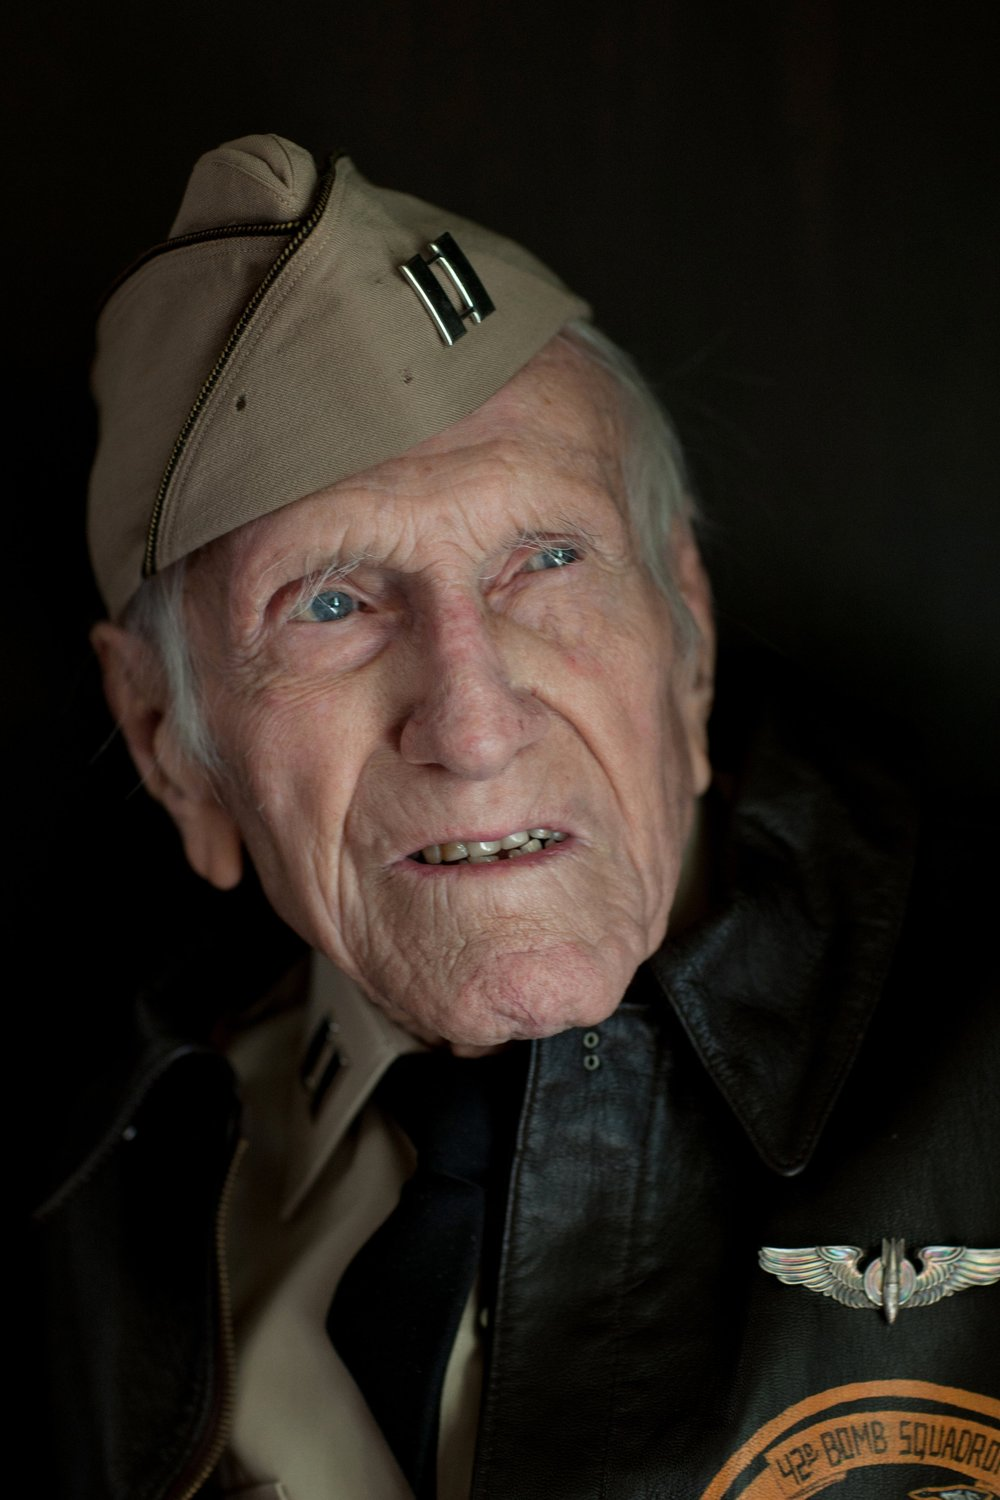 LOUIS ZAMPERINI / THE WALL STREET JOURNAL